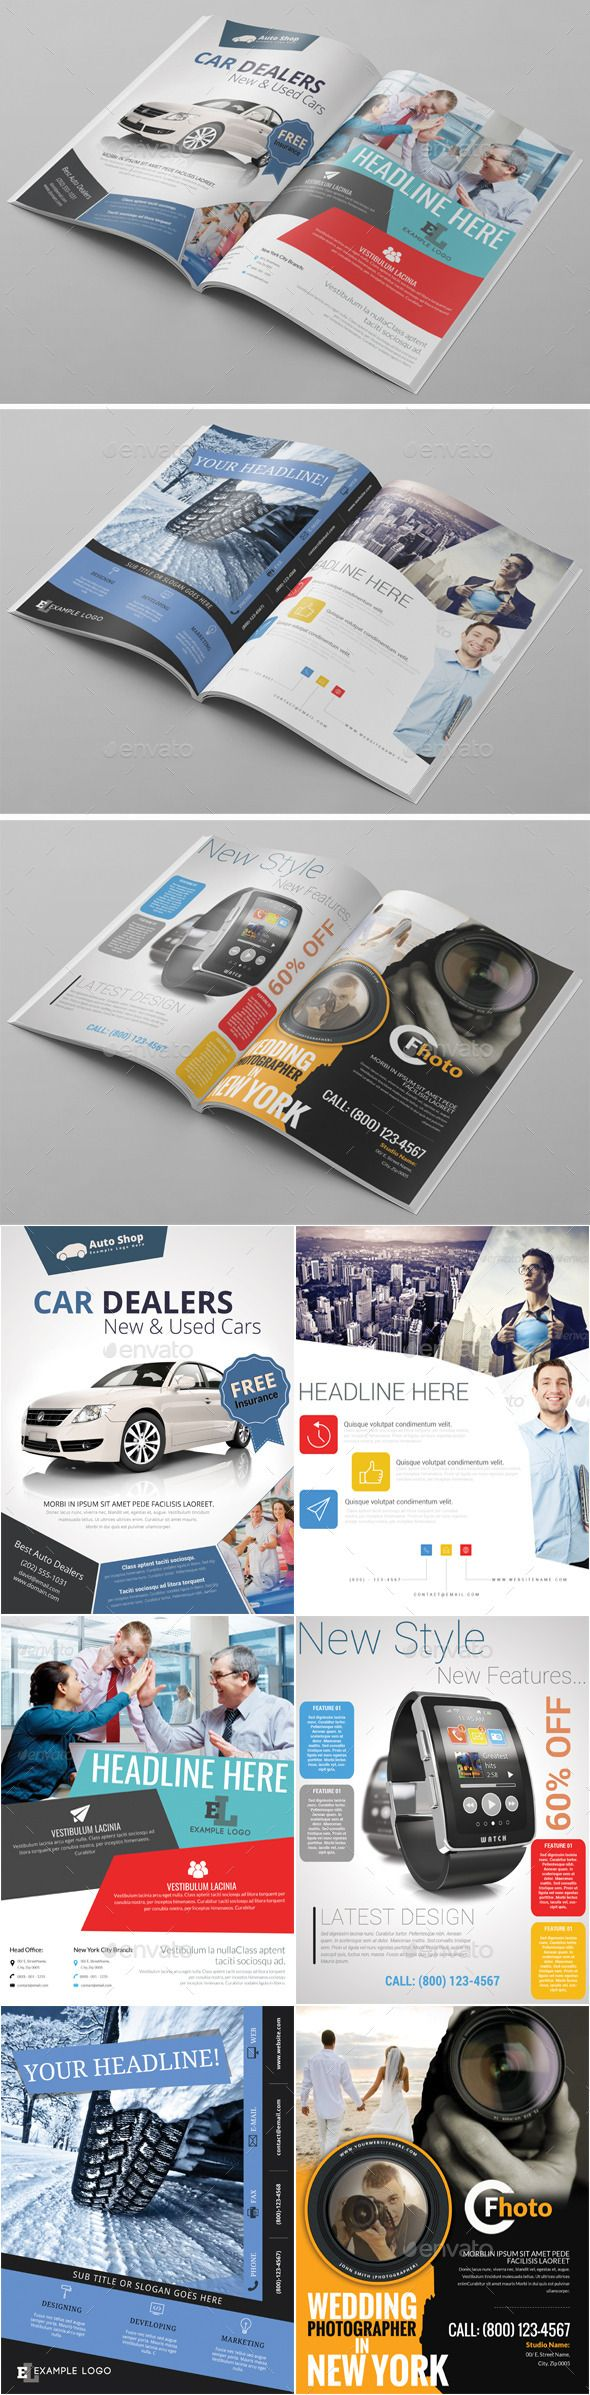 6x Magazine Ad Template Pack Template Design Journal Download